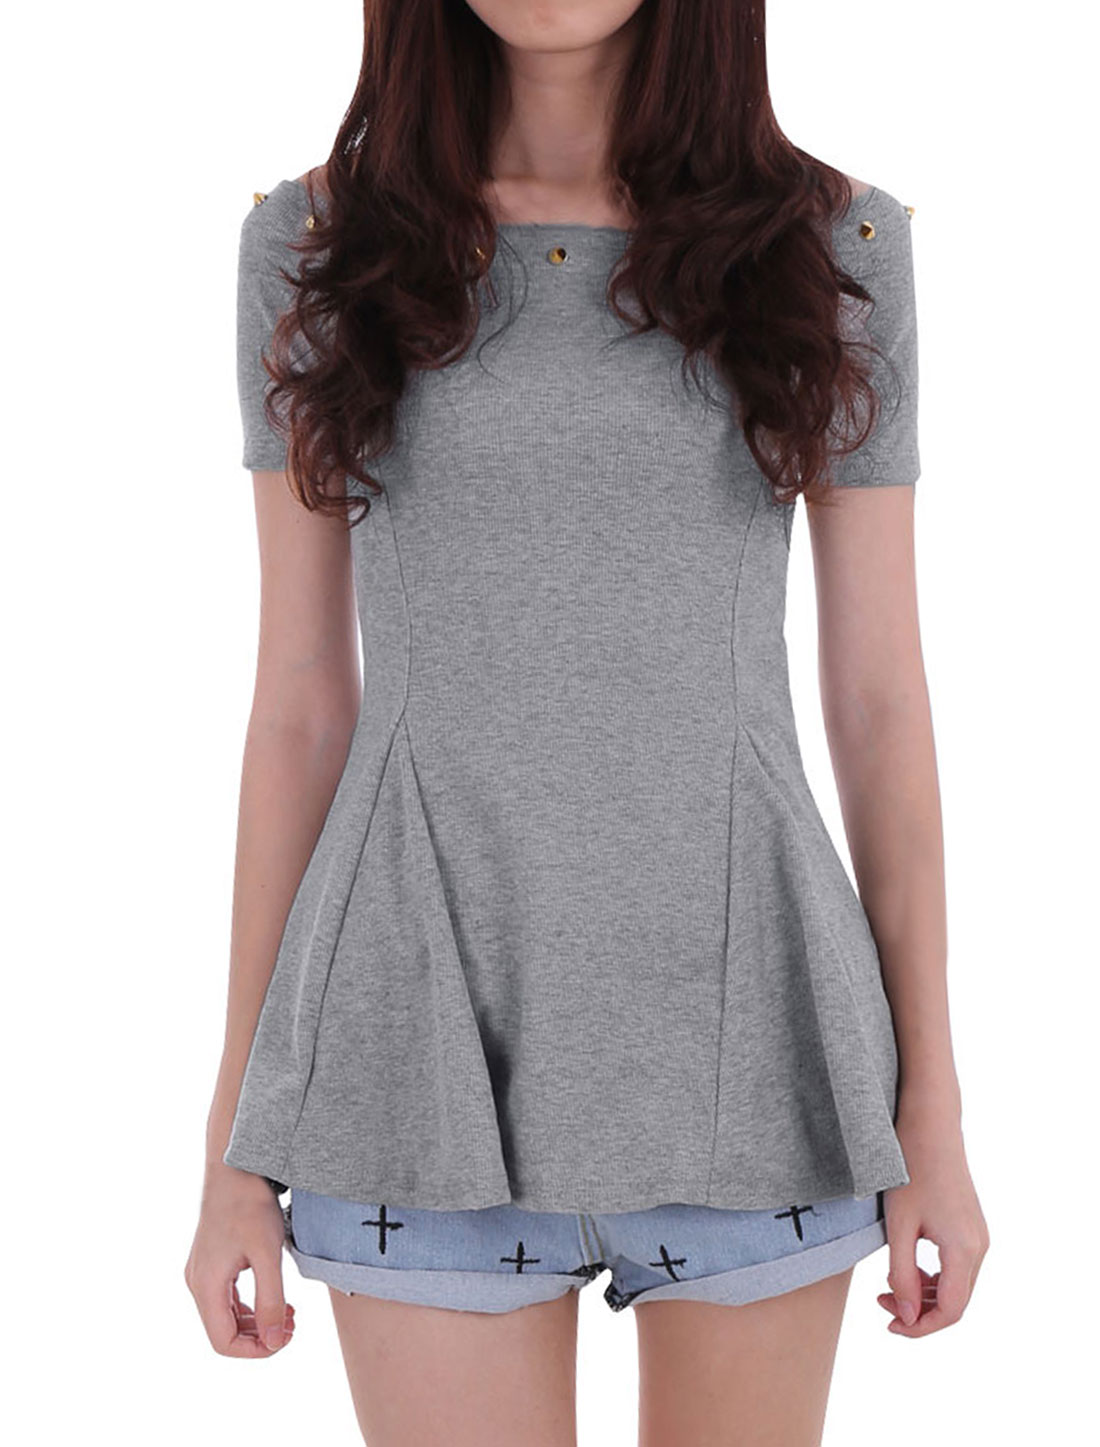 Lady Heather Gray Color Boat Neck Short Sleeve Off-Shoulder Peplum Top XS